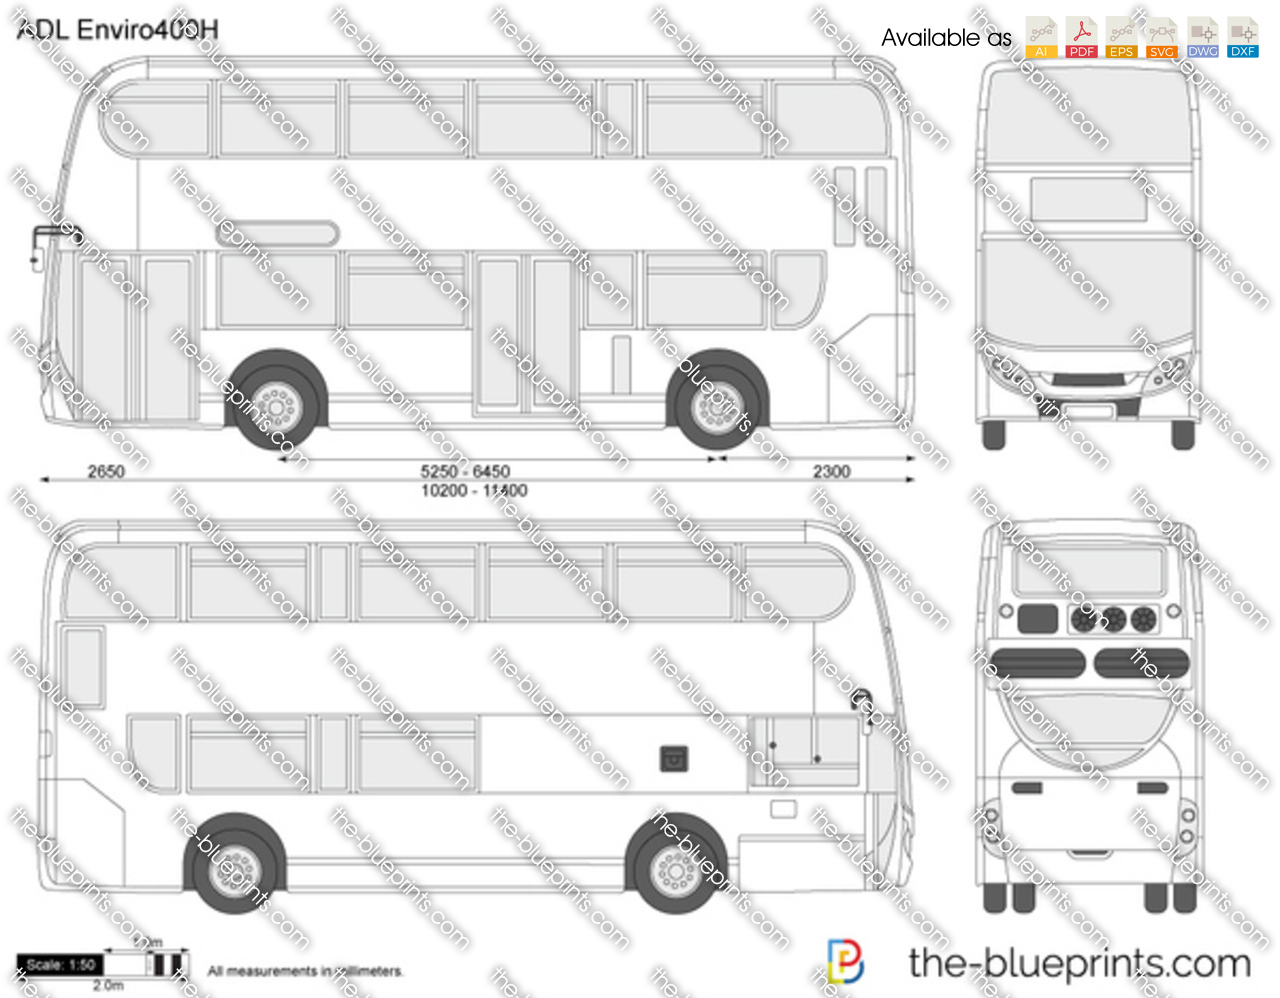 Ford Transit Wagon >> The-Blueprints.com - Vector Drawing - ADL Enviro400H